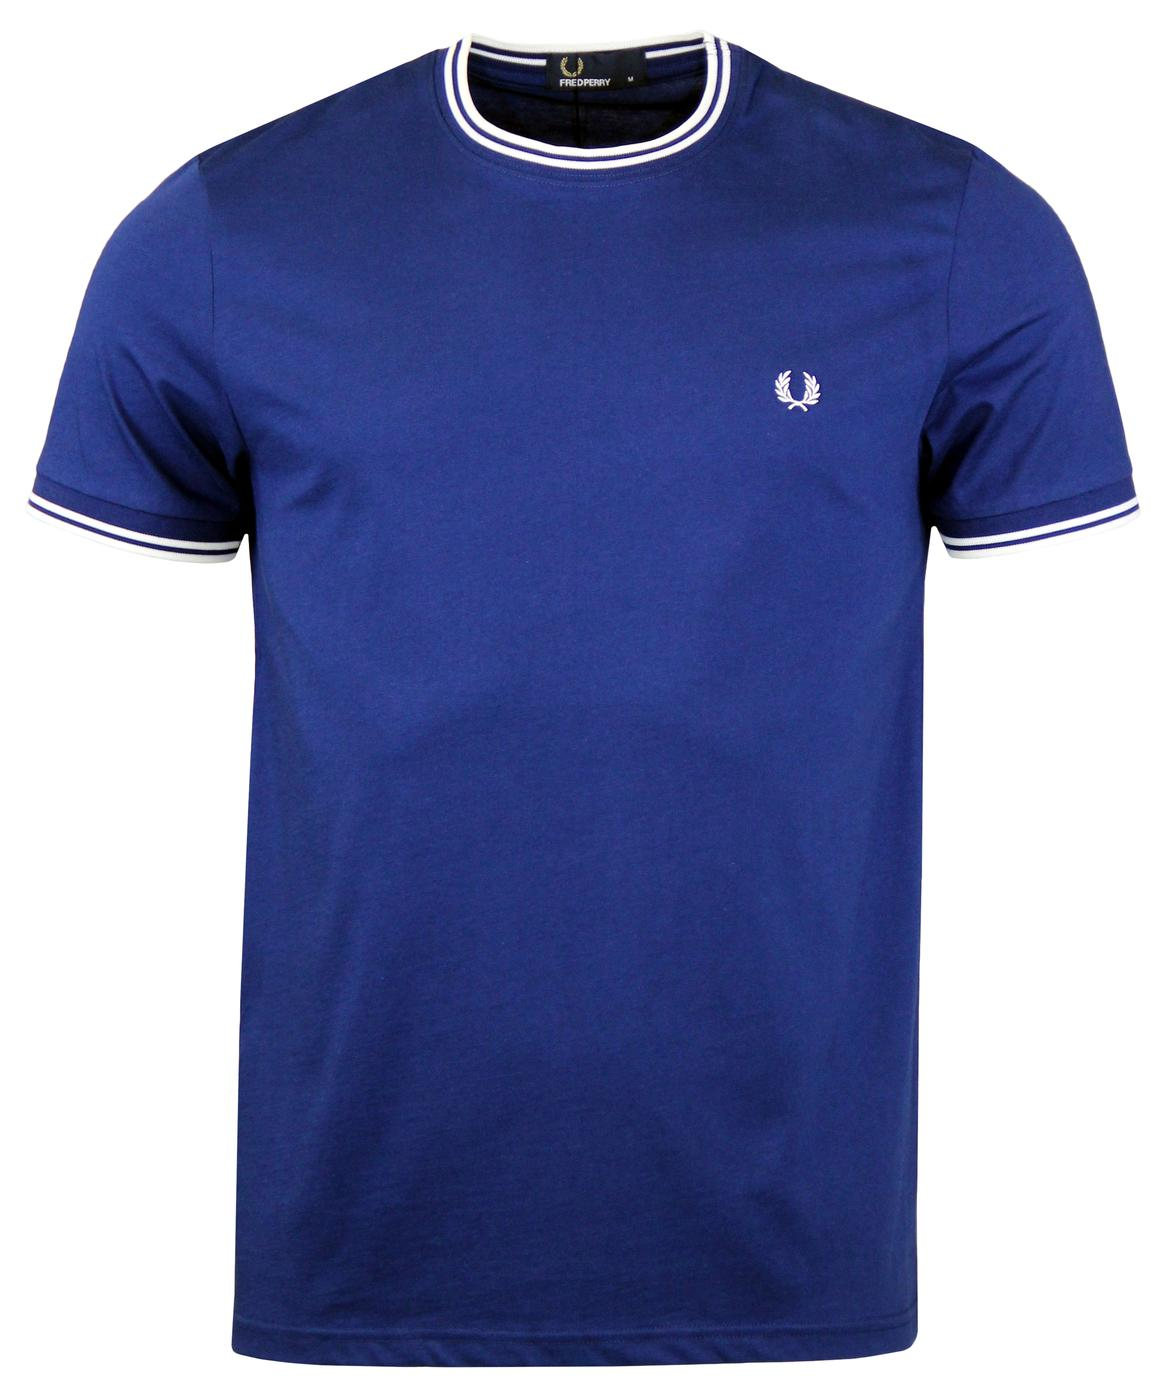 FRED PERRY Retro Mod Twin Tipped Crew Tee M. BLUE